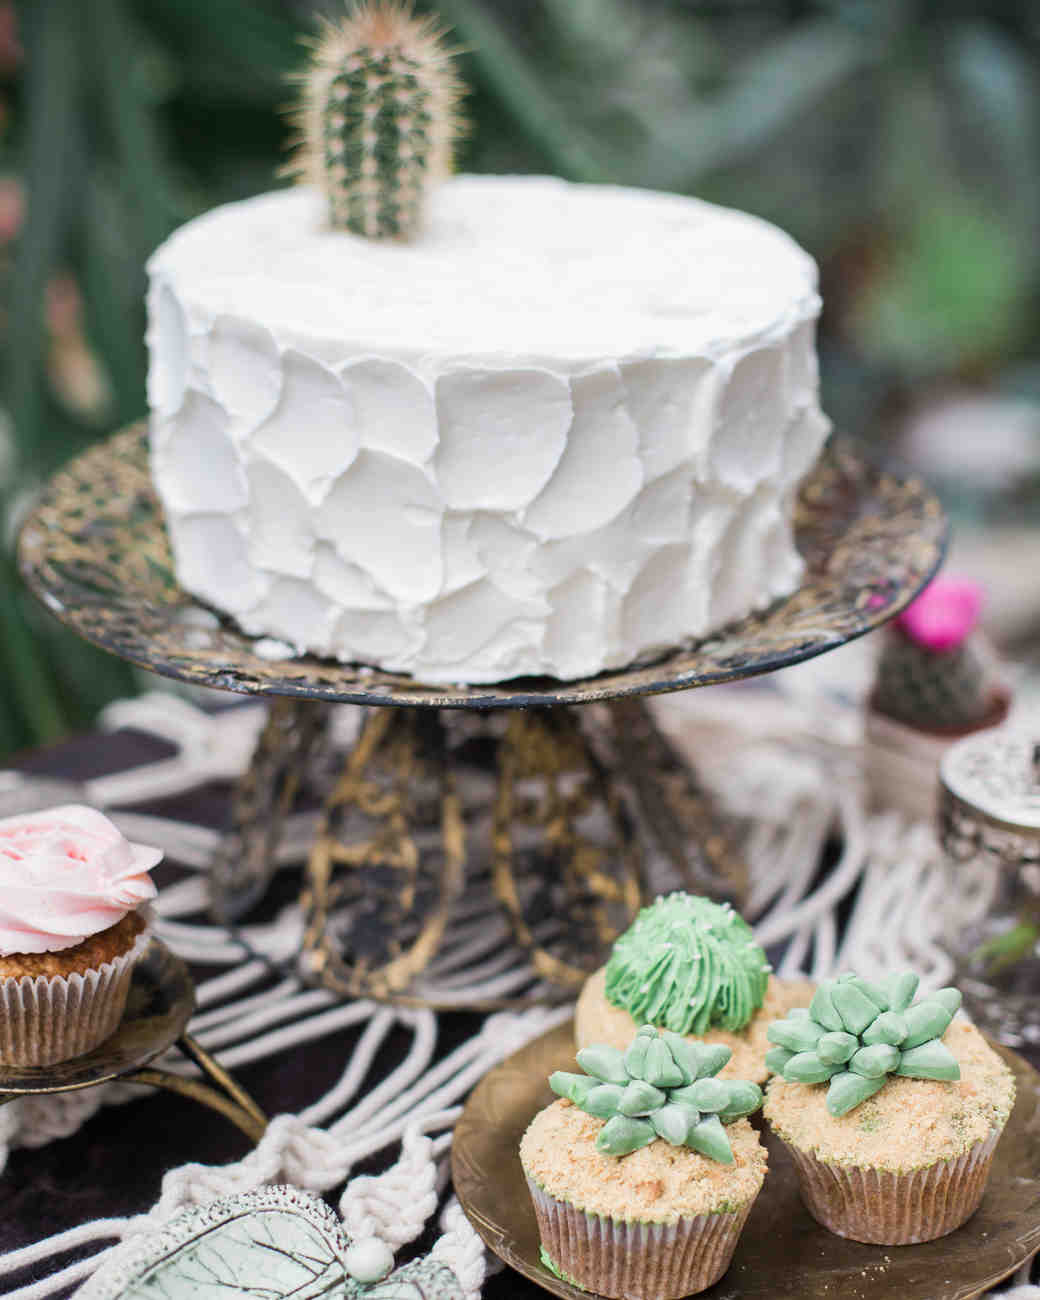 Cake and Cupcakes with Frosting Cacti